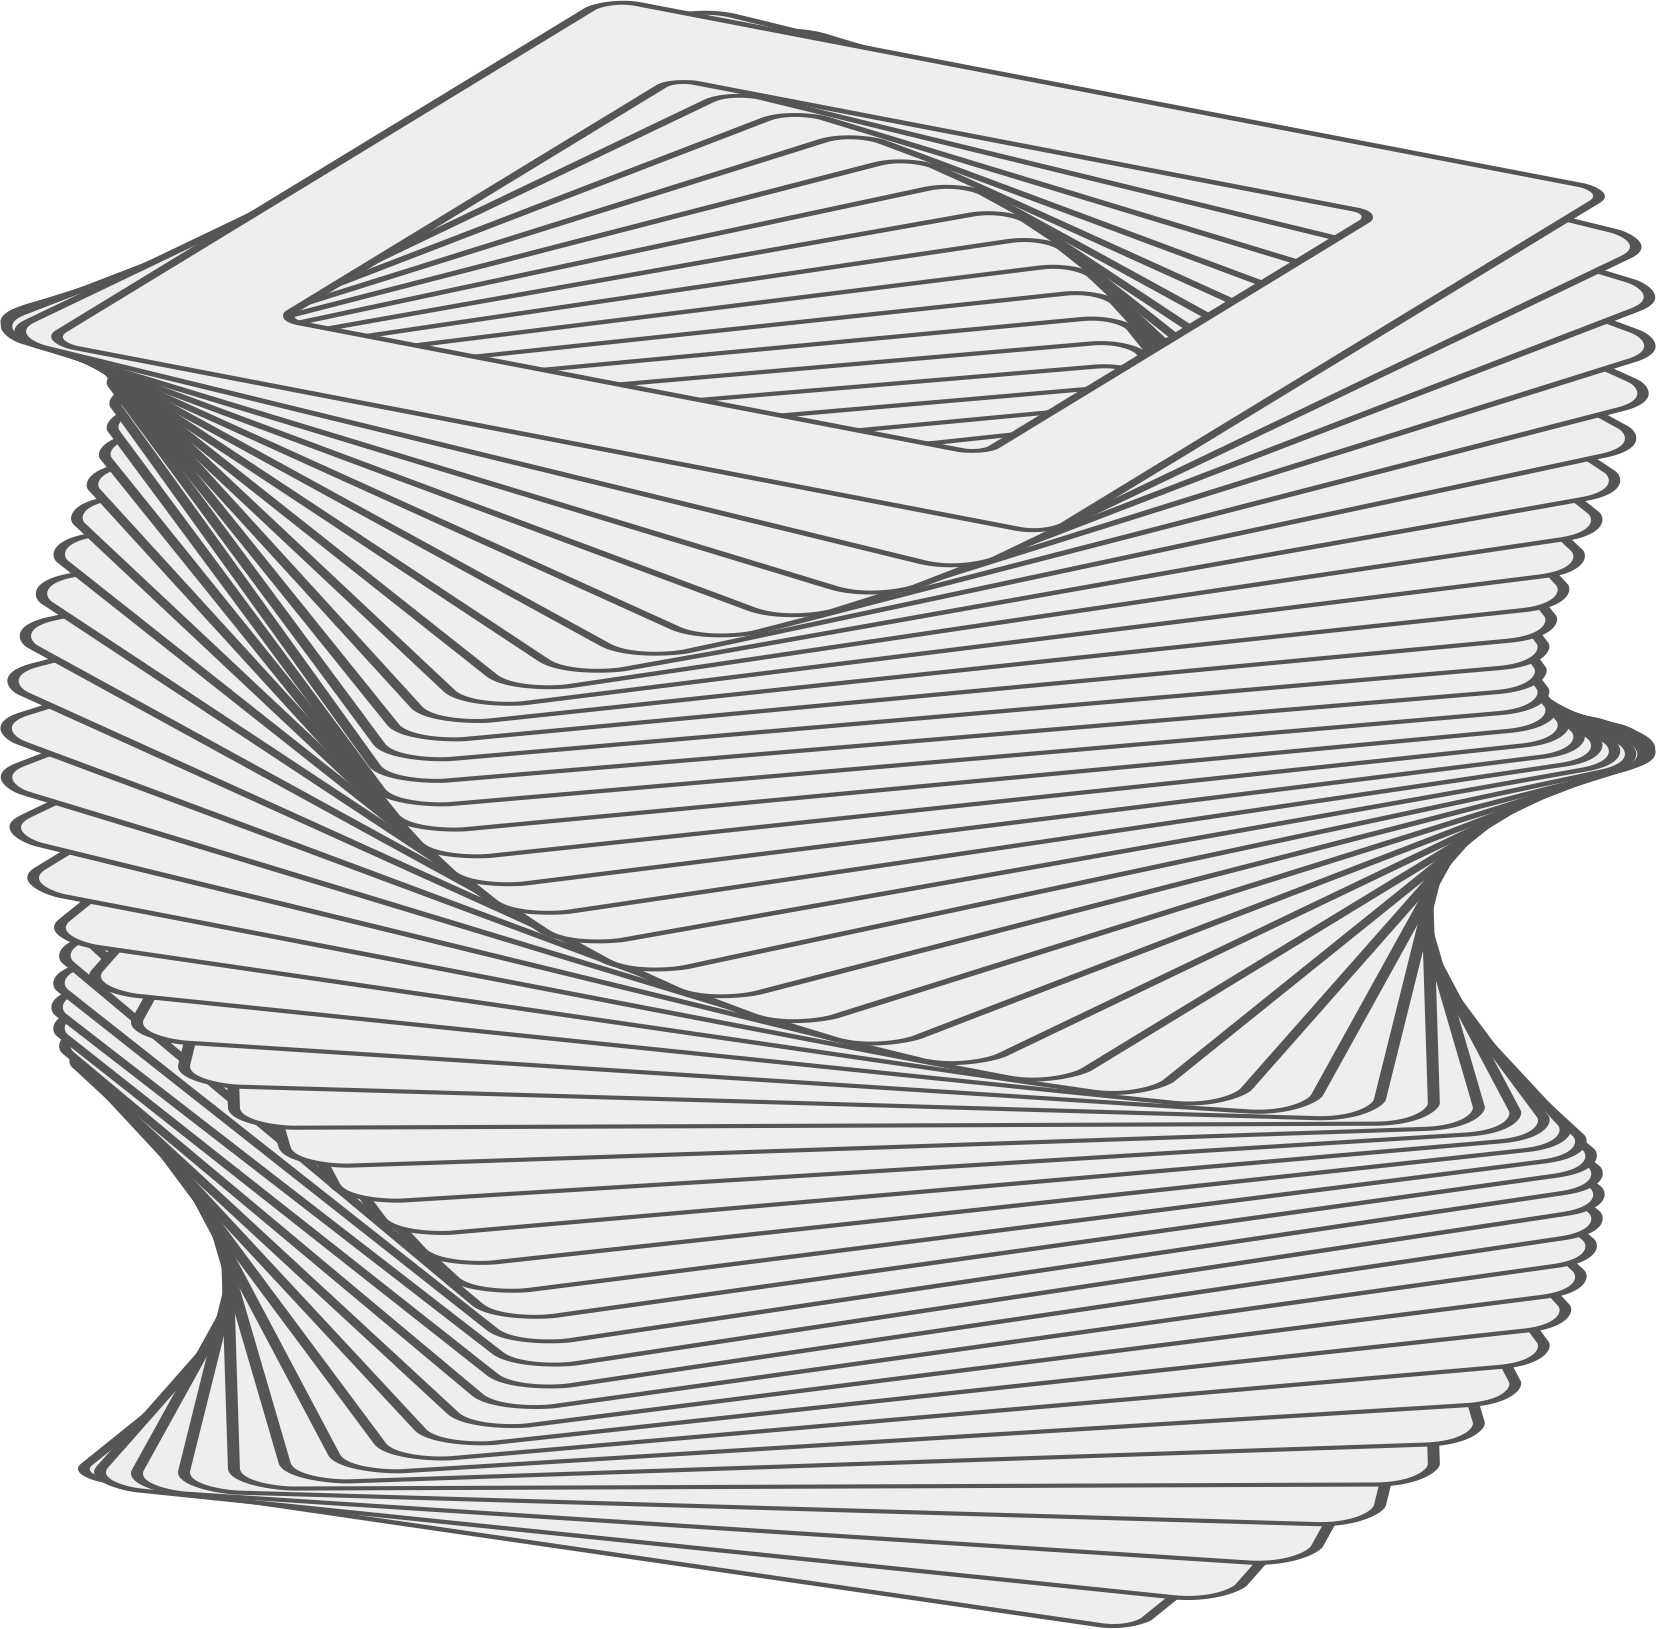 image freeuse library Twisted big image png. Block clipart animated.